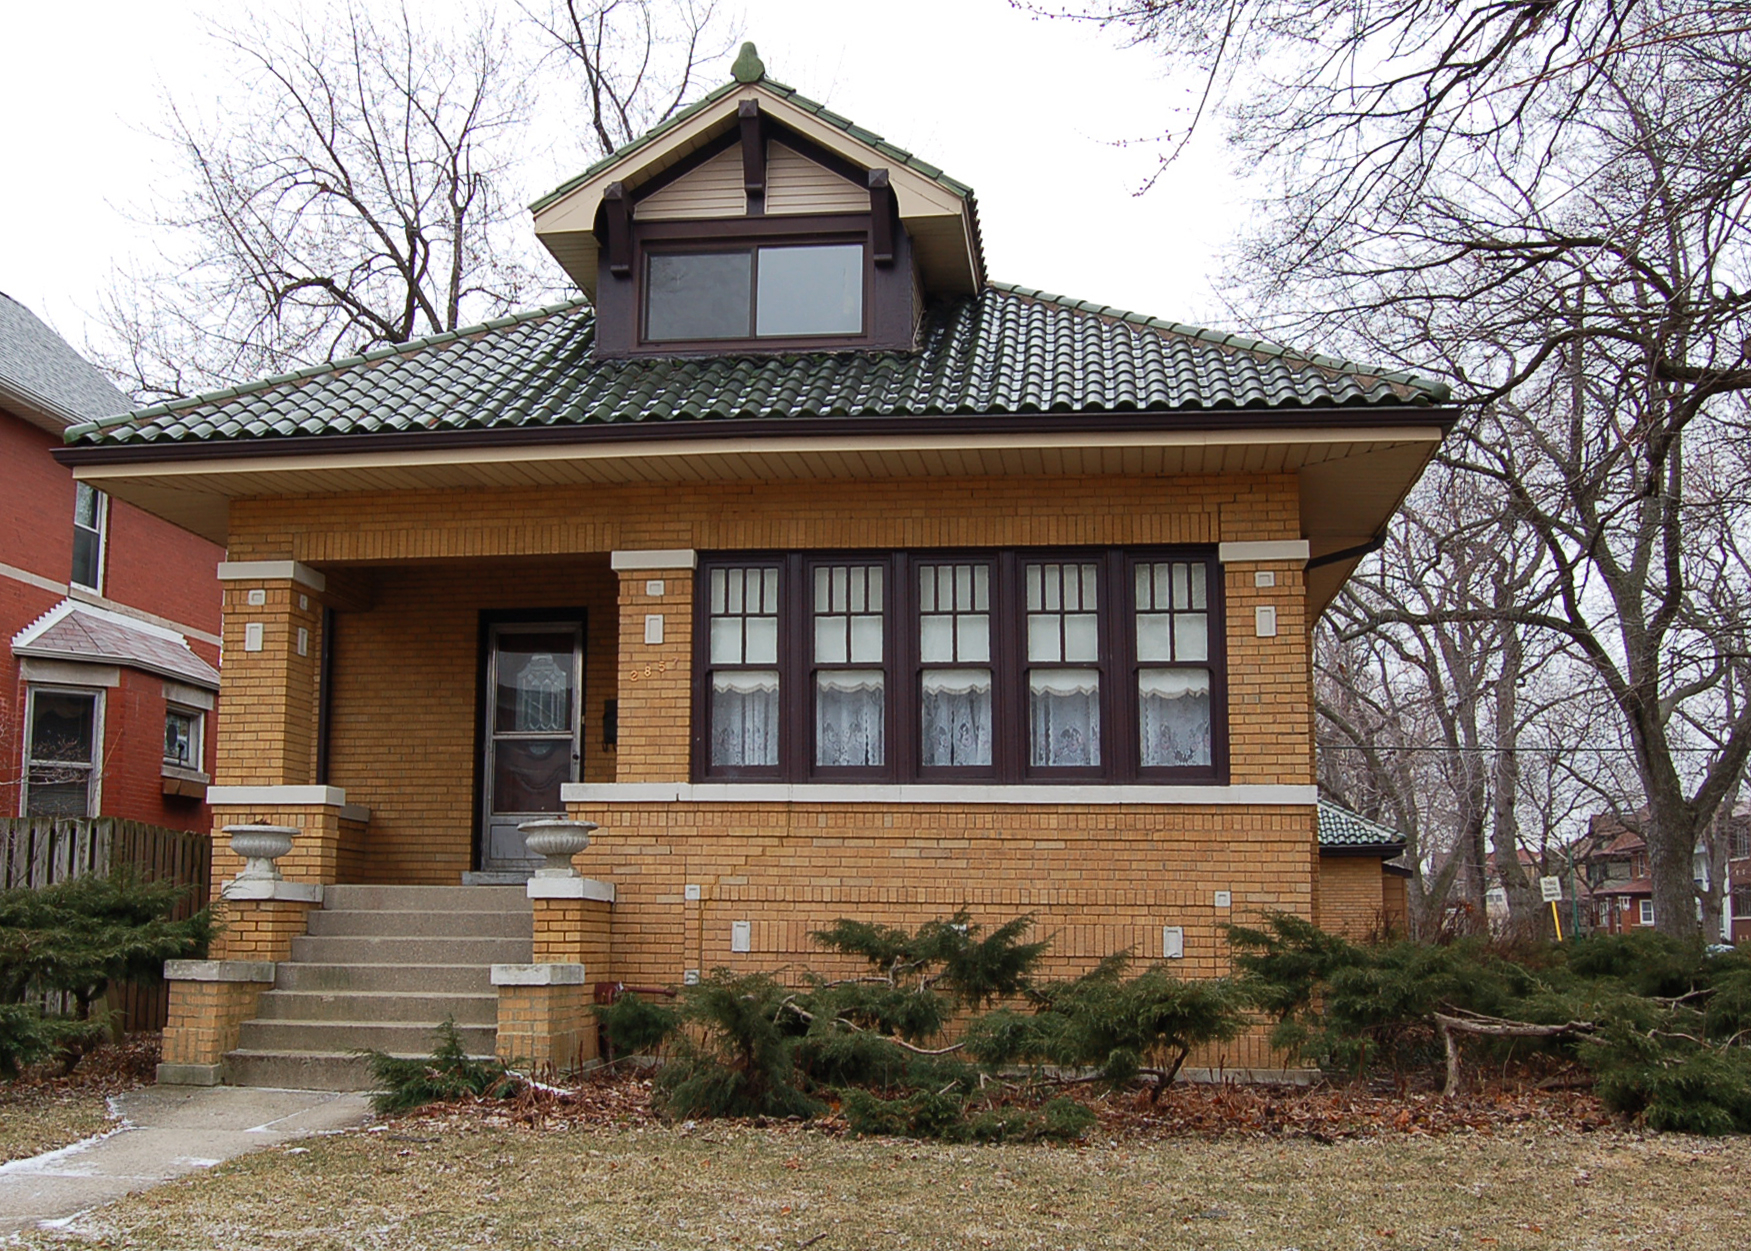 Fabulous Chicago Bungalow Report - Anne Rossley Real Estate pertaining to Review Bungalow Homes For Sale